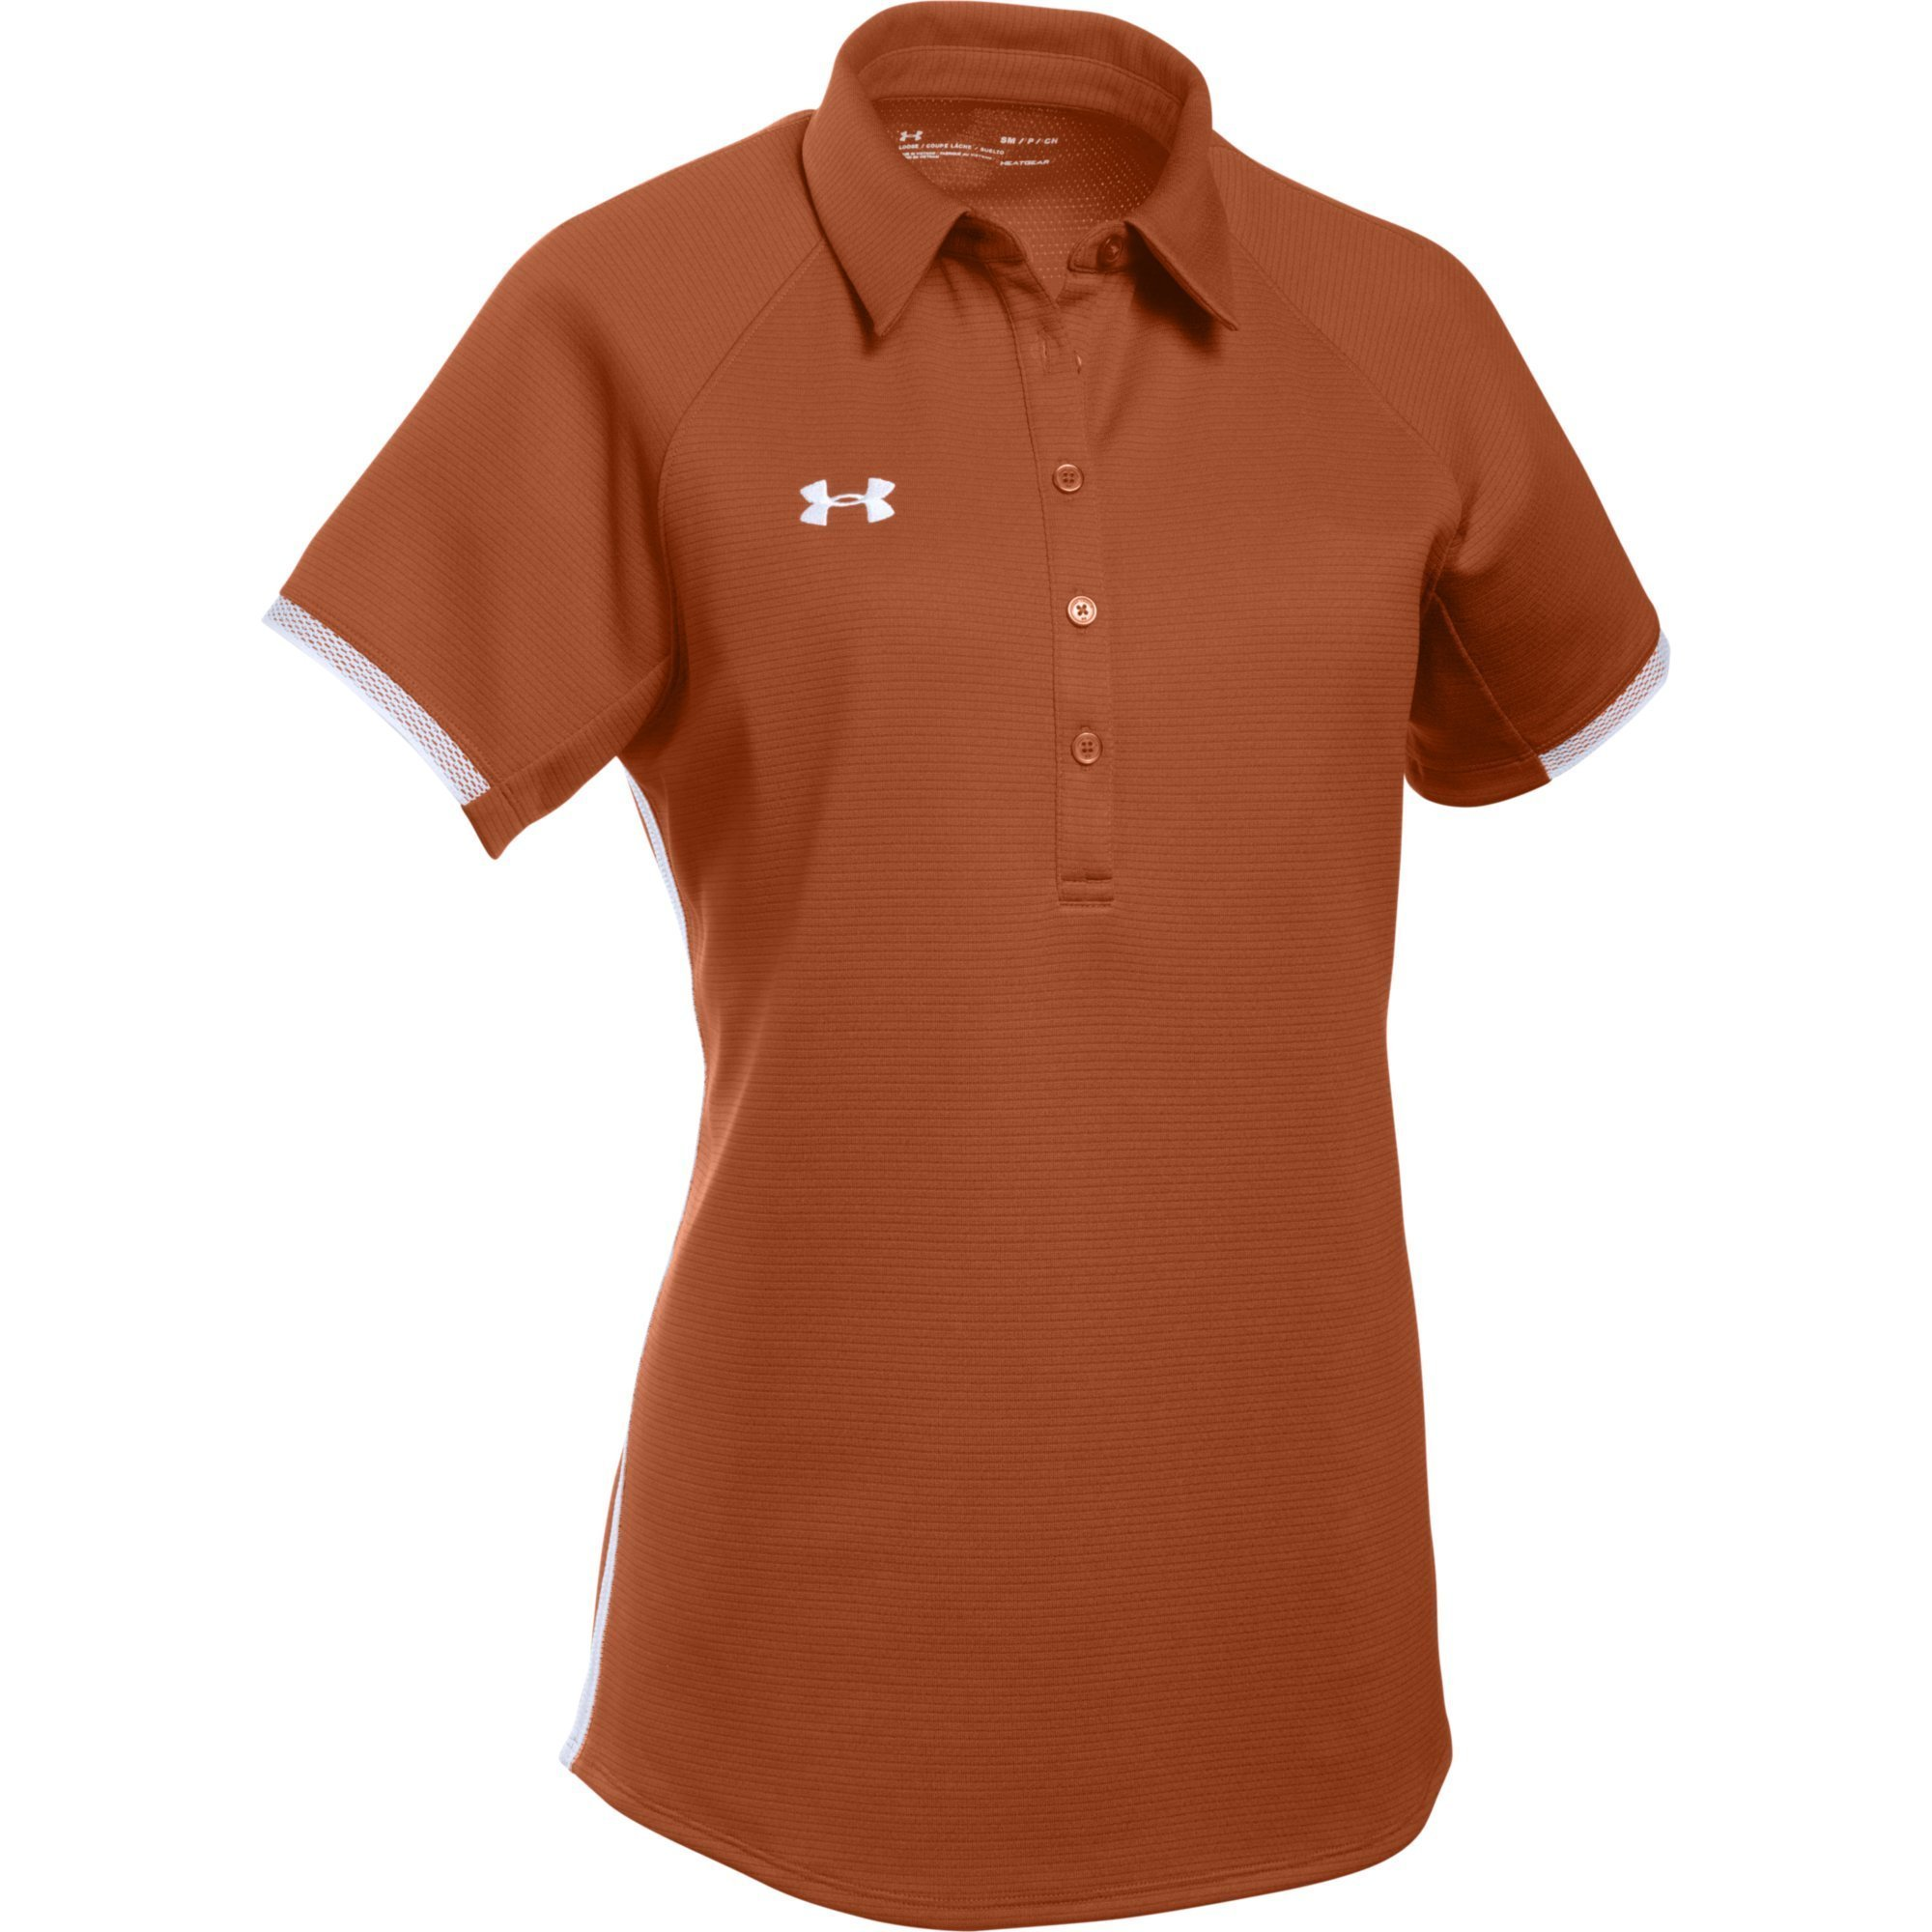 Under Armour Women's UA Rival Polo (X-Large, Texas Orange) by Under Armour (Image #1)